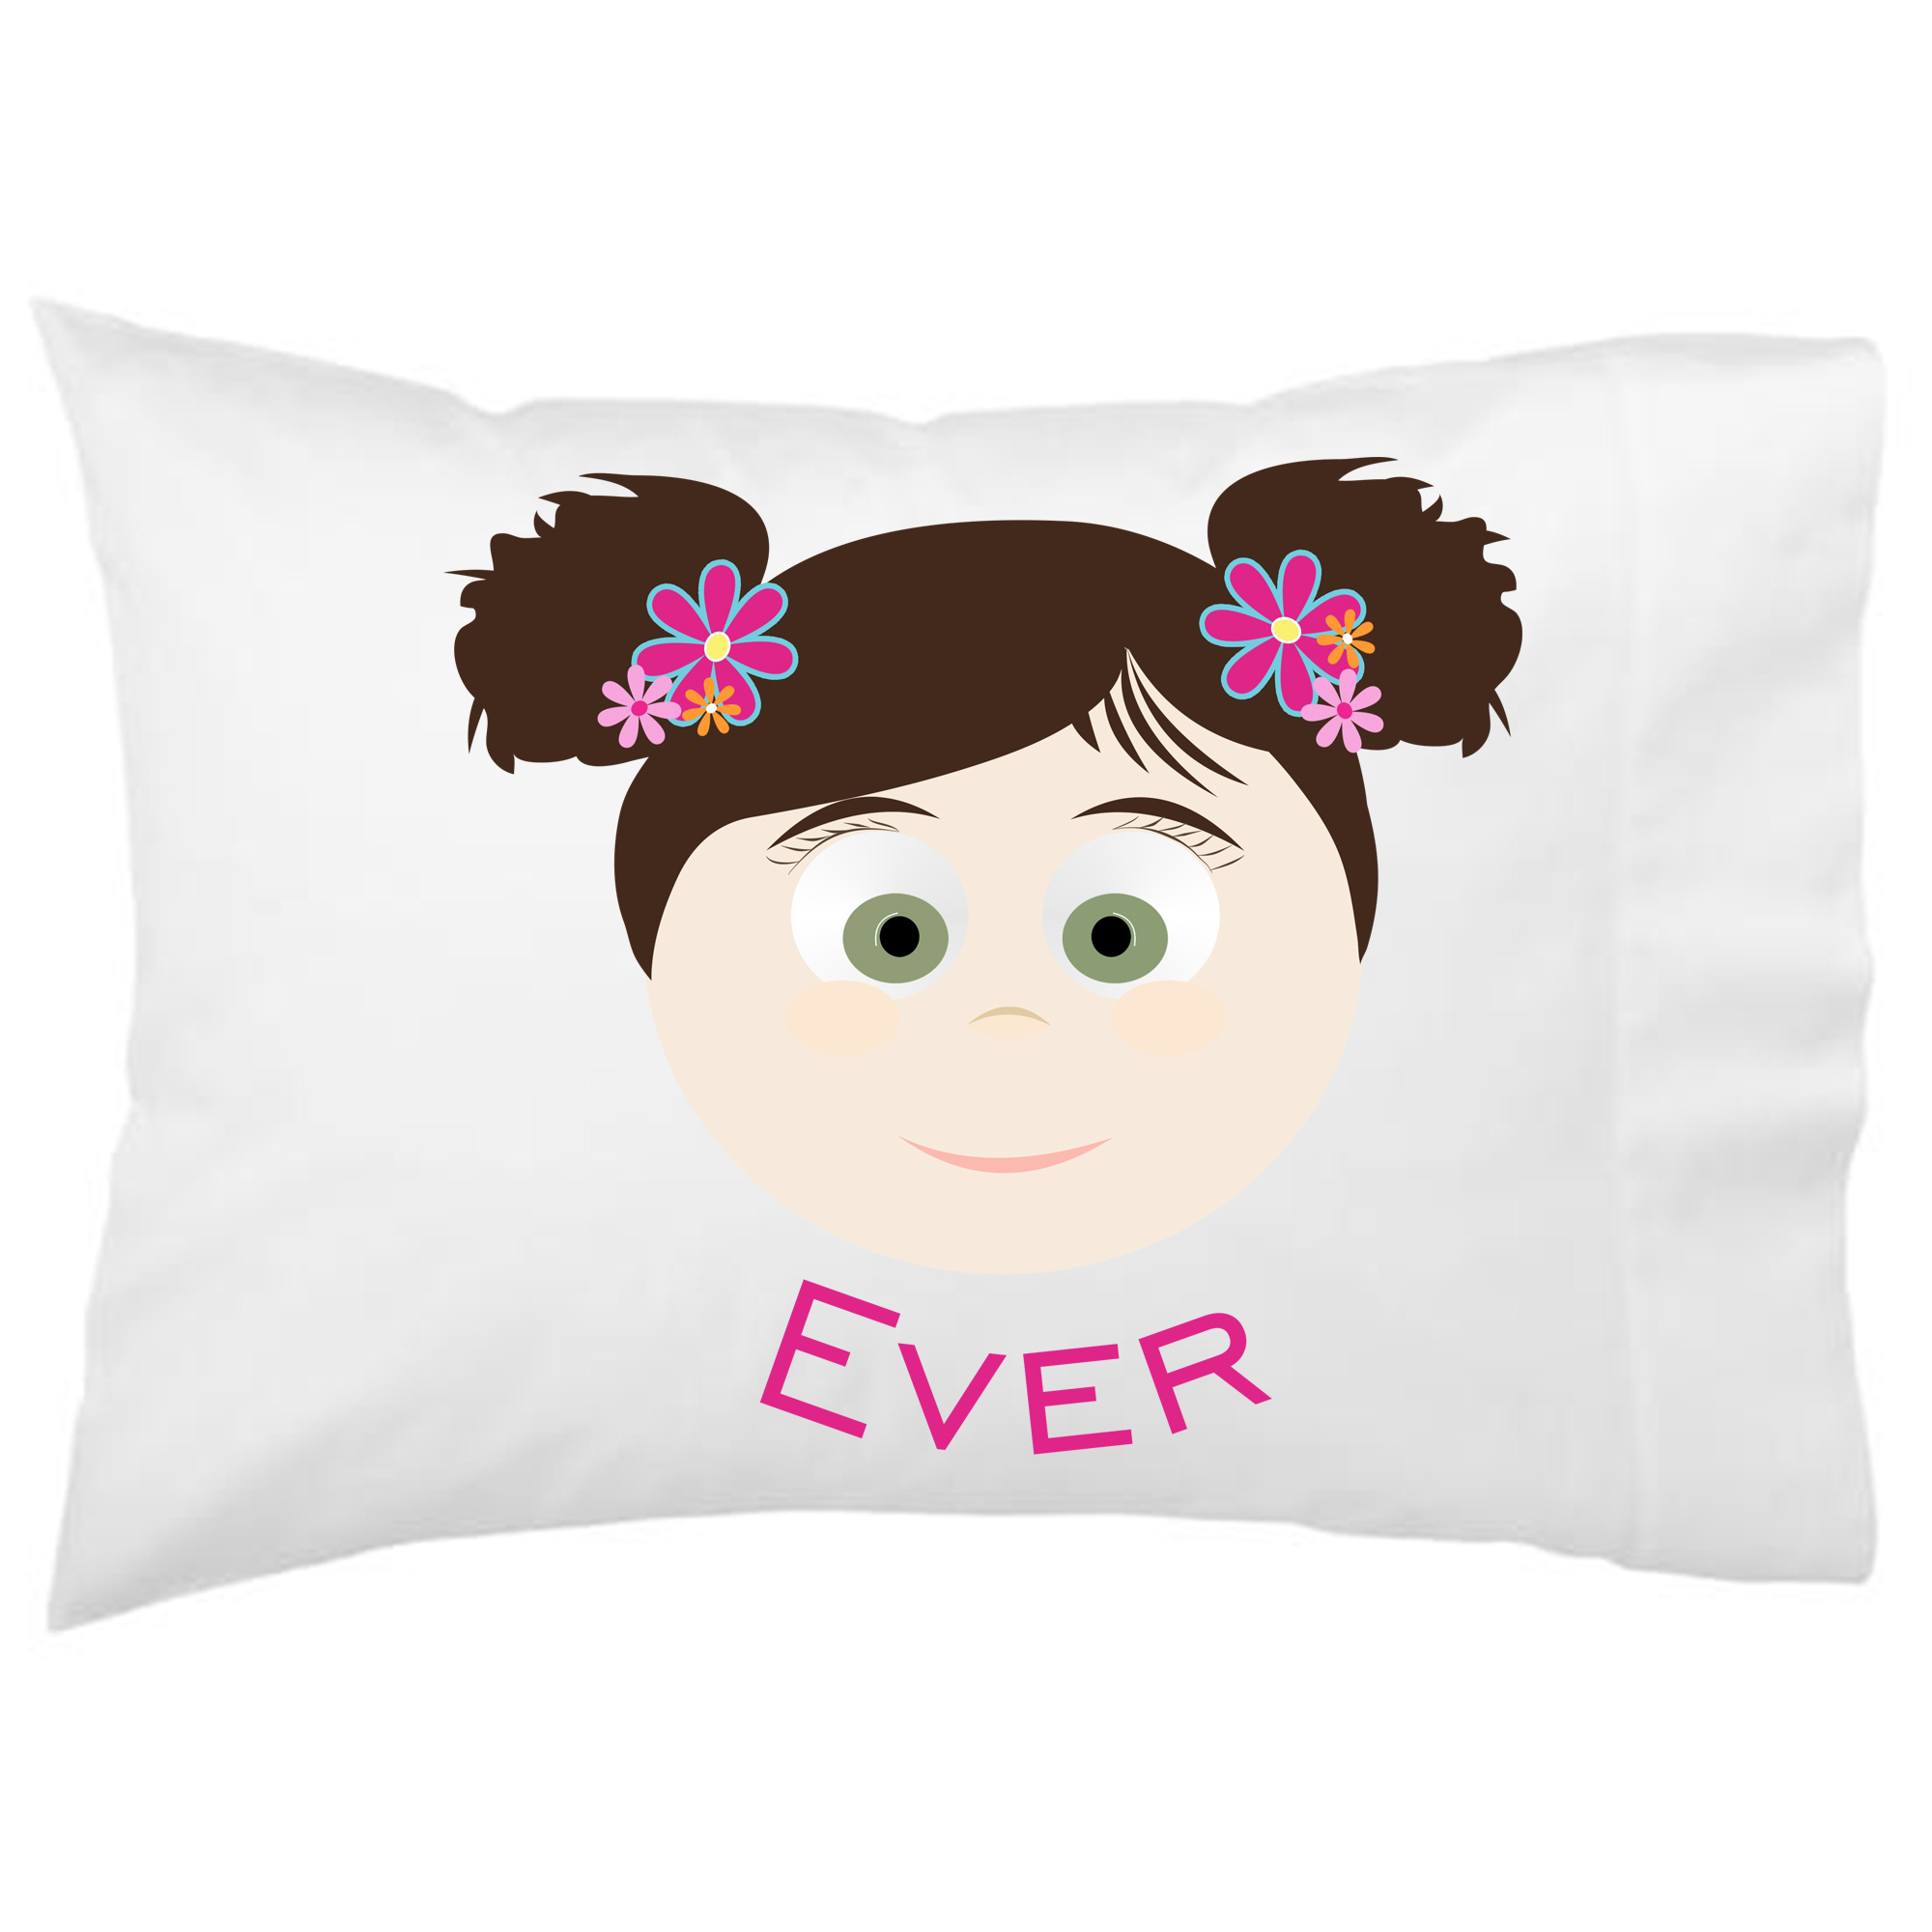 Little Me Girls Personalized Kids Pillowcase Design Your Own Face